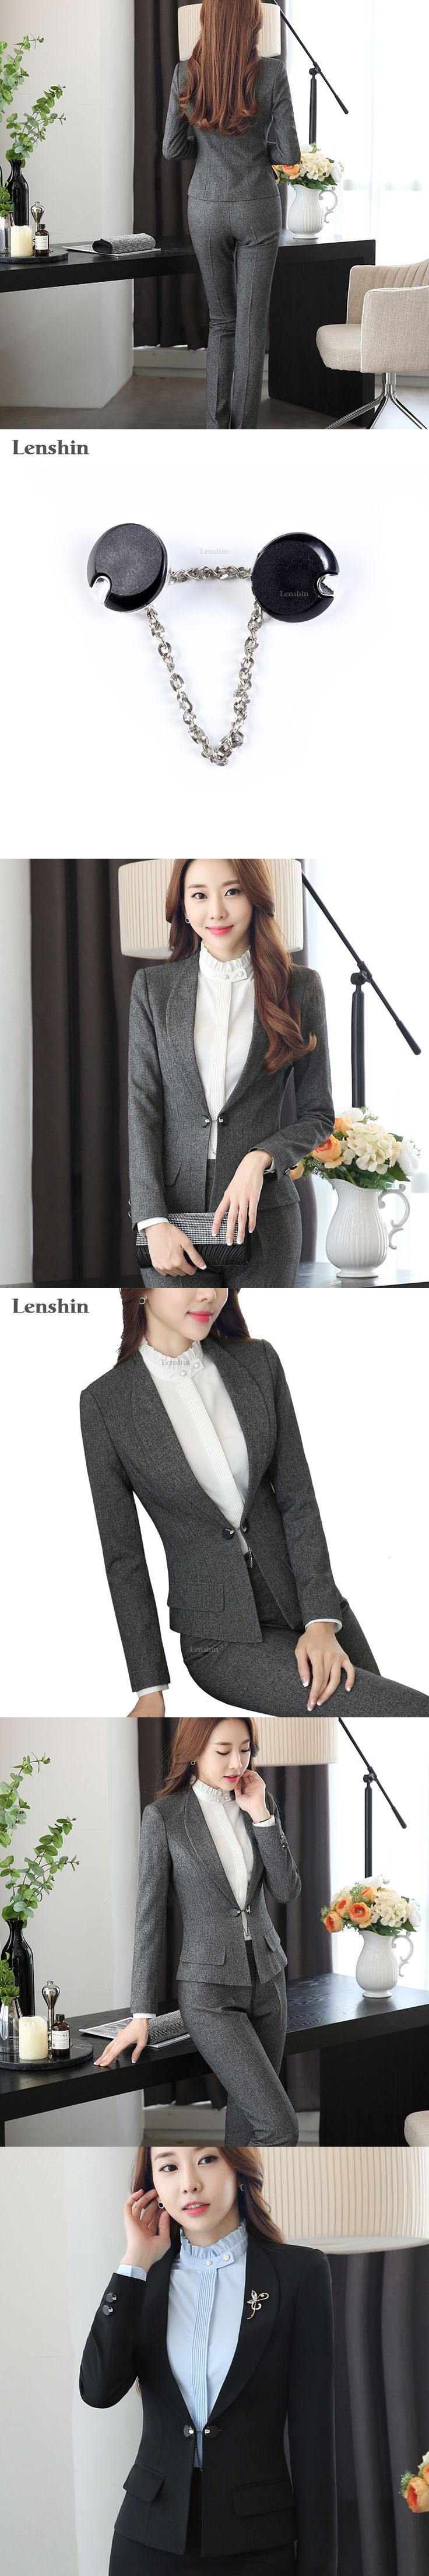 Lenshin Shawl Collar Two Piece Ladies Formal Pant Suit For Wedding Office Uniform Designs Women Business Suits For work